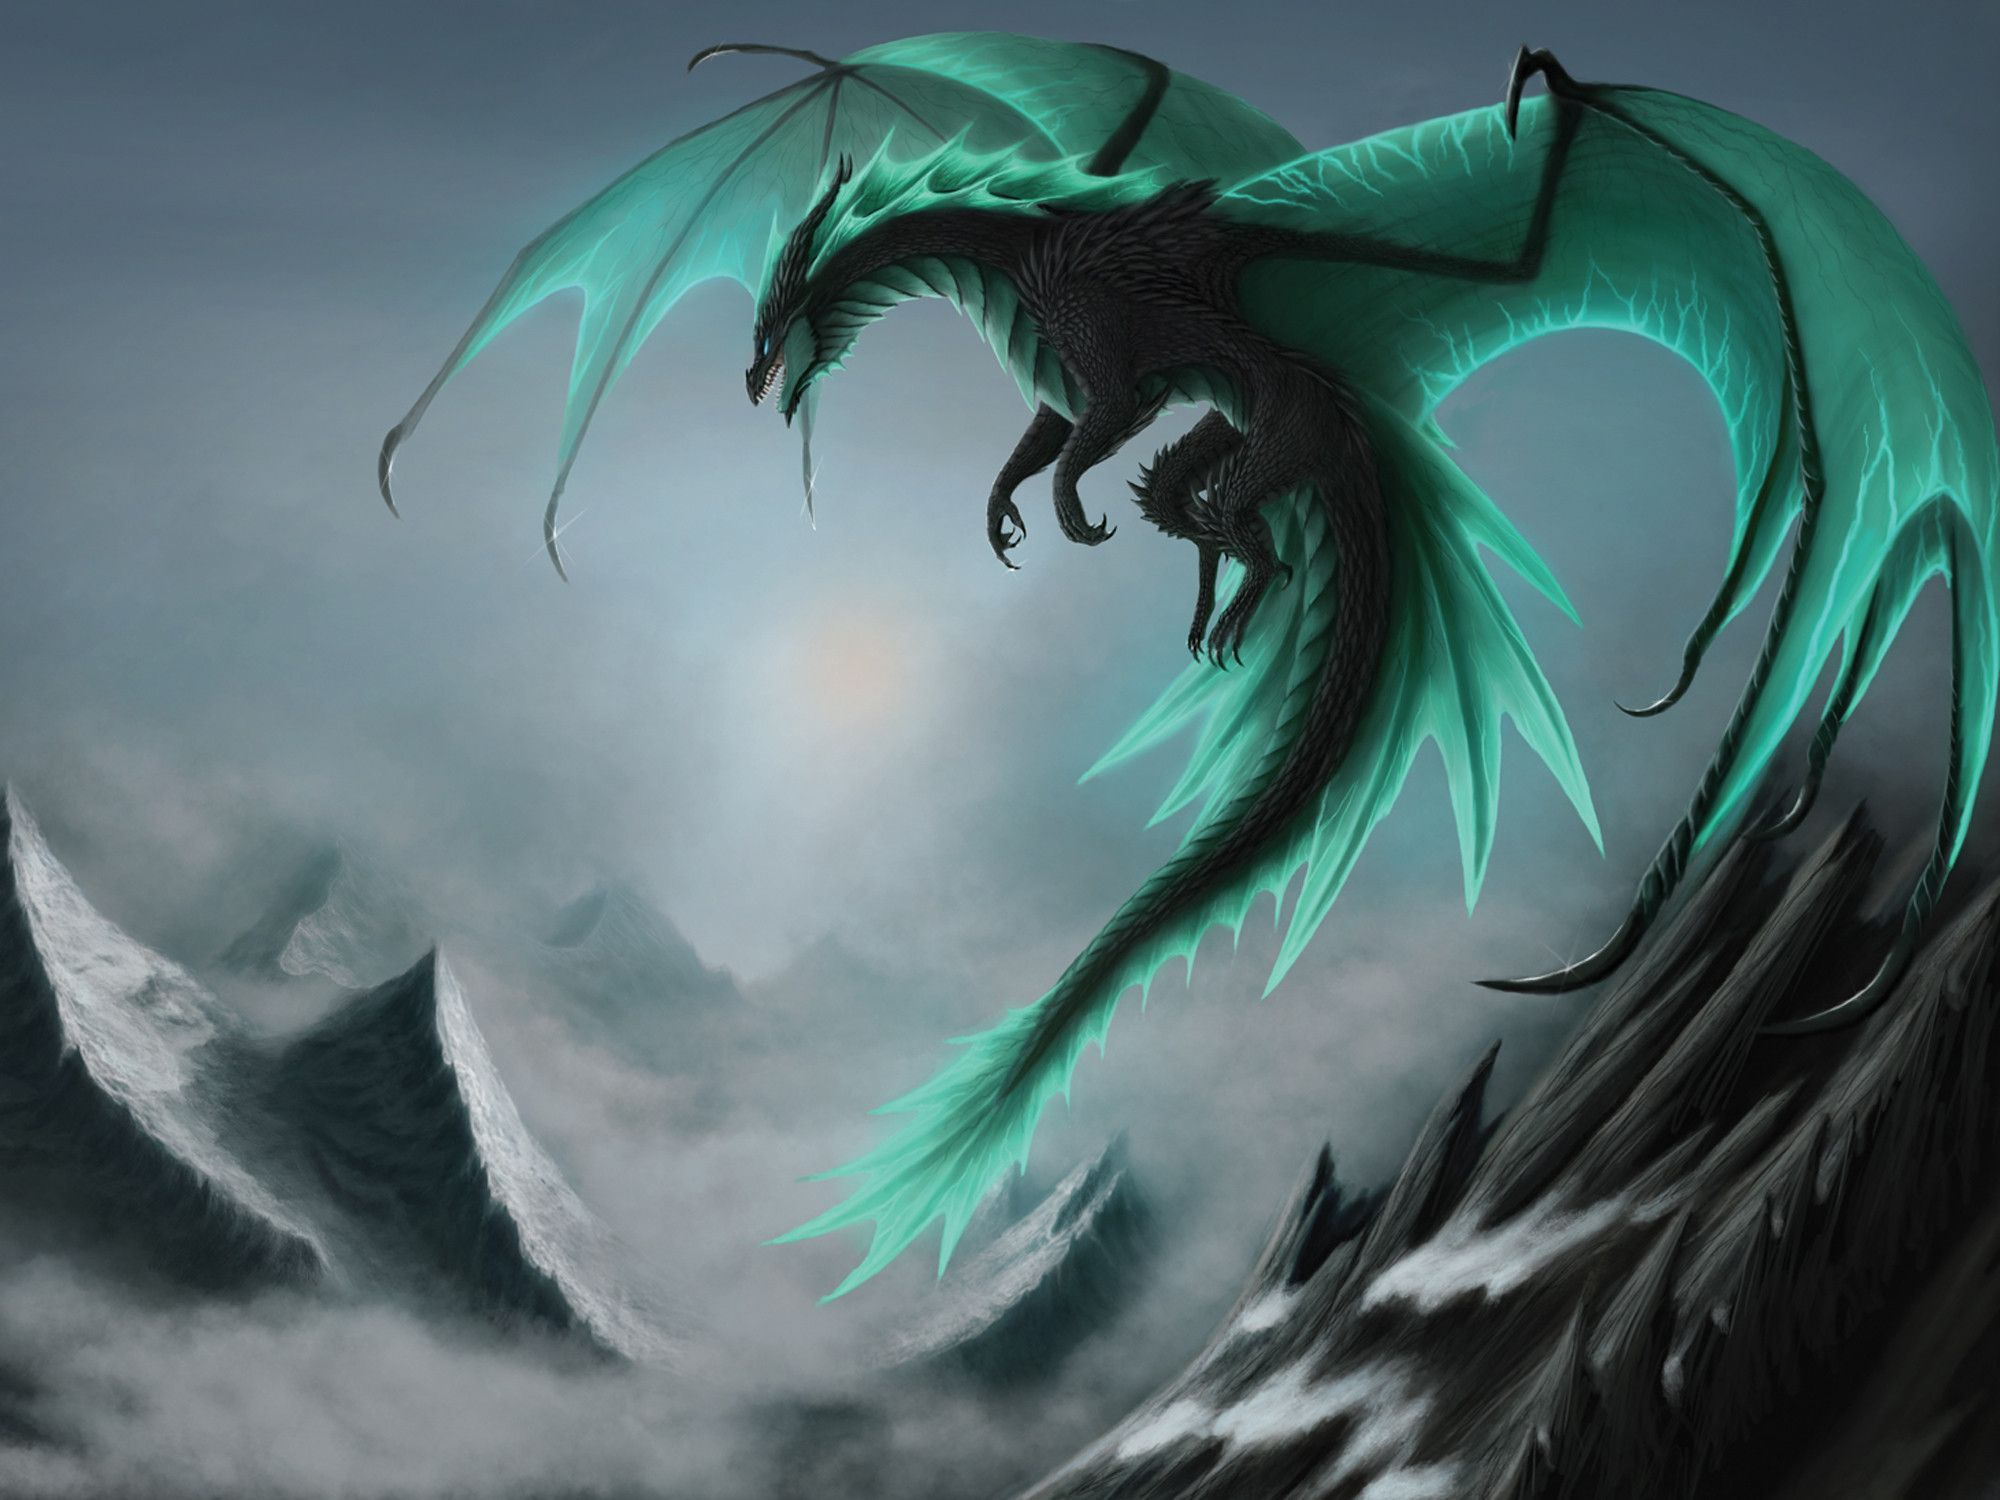 Free And Stunning Dragon Wallpaper Collection Graphicloads 2000x1500